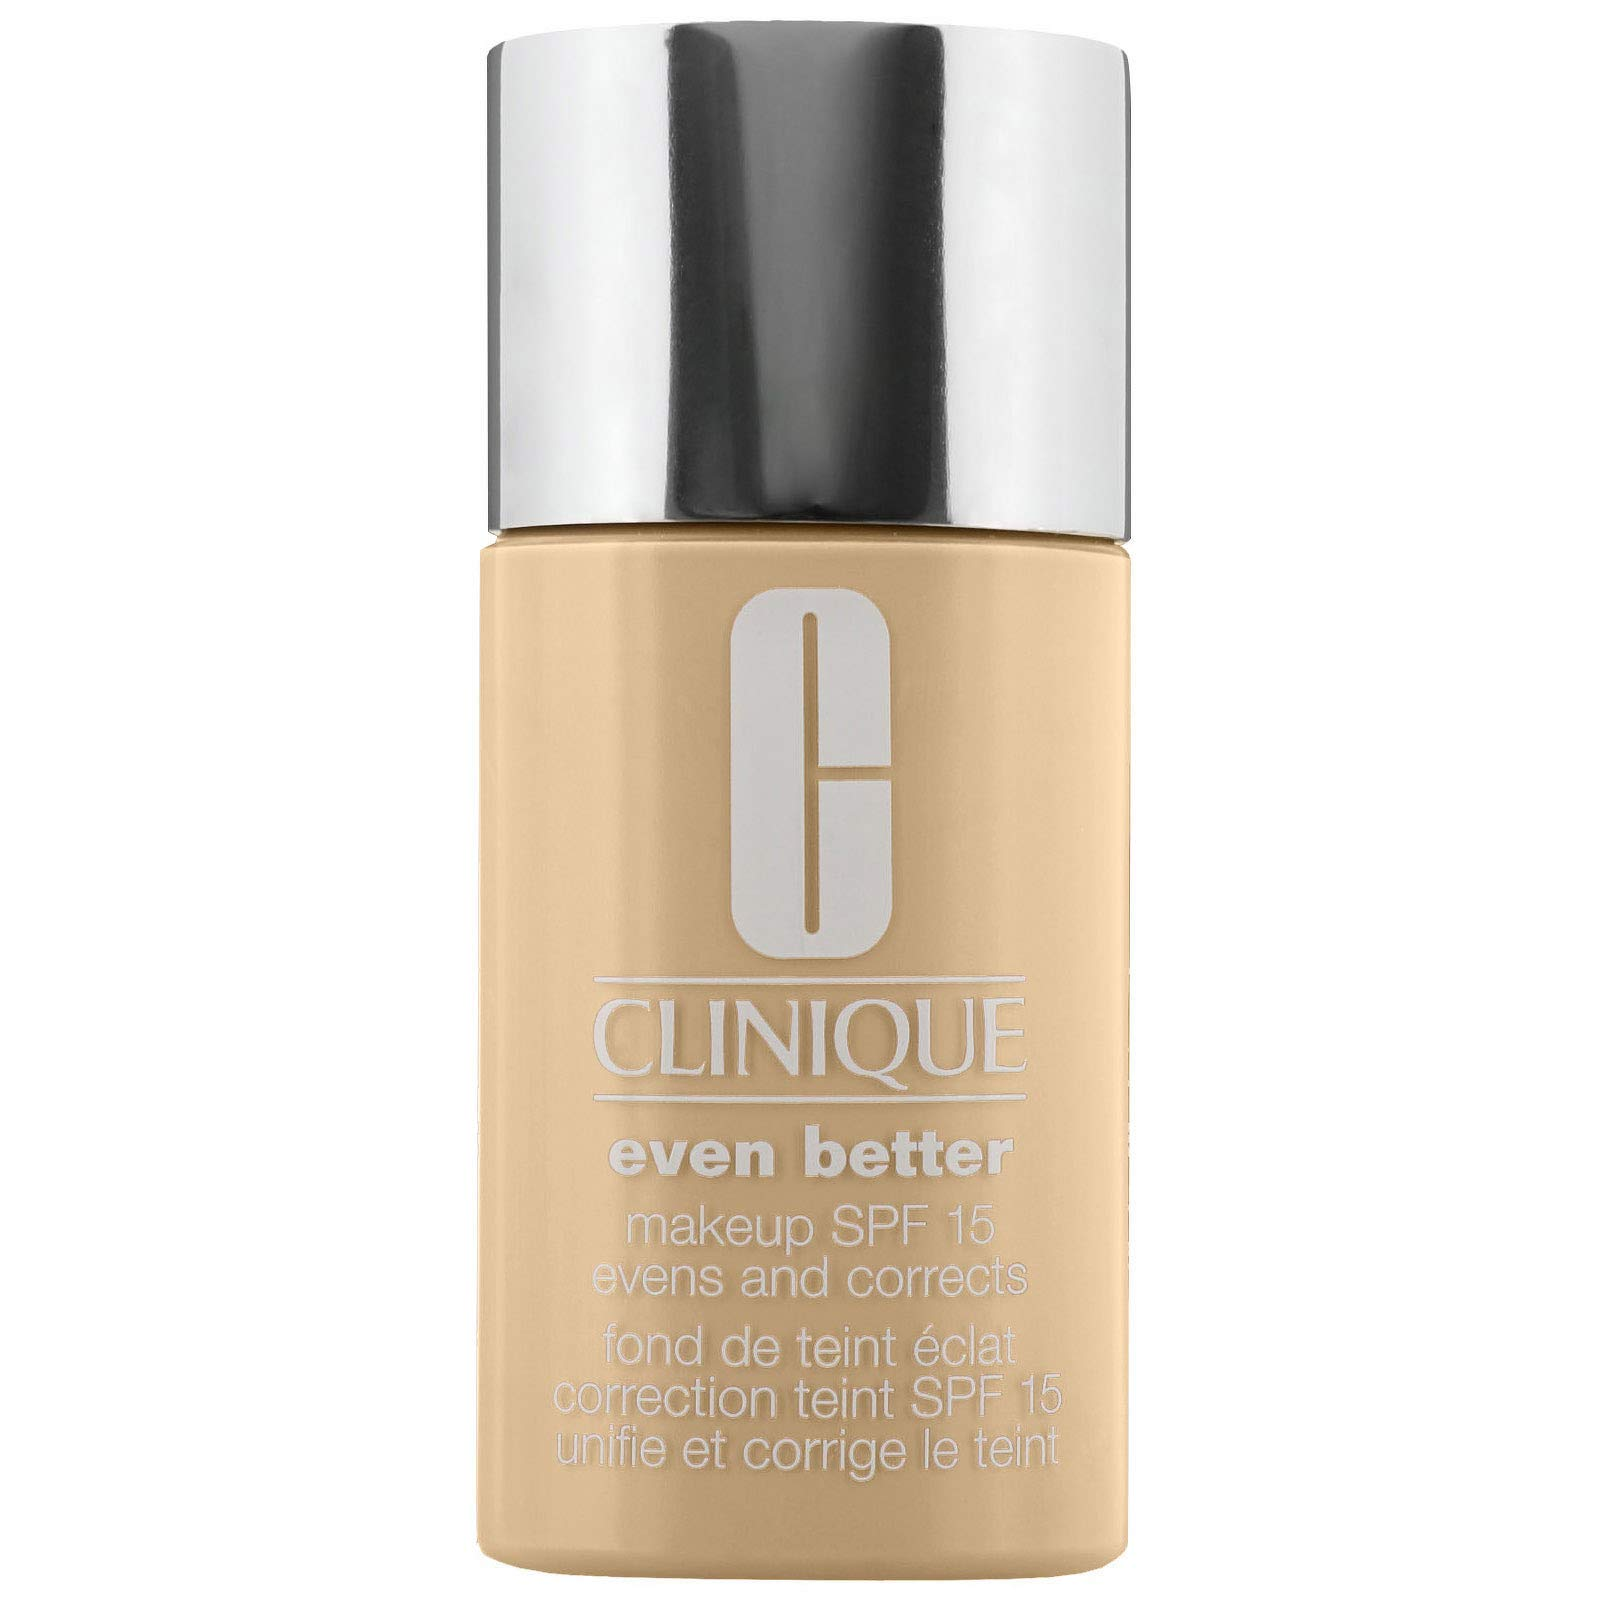 Clinique Even Better Makeup Spf 15 Dry to Combination Oily Skin, Neutral, 1 Ounce by Clinique